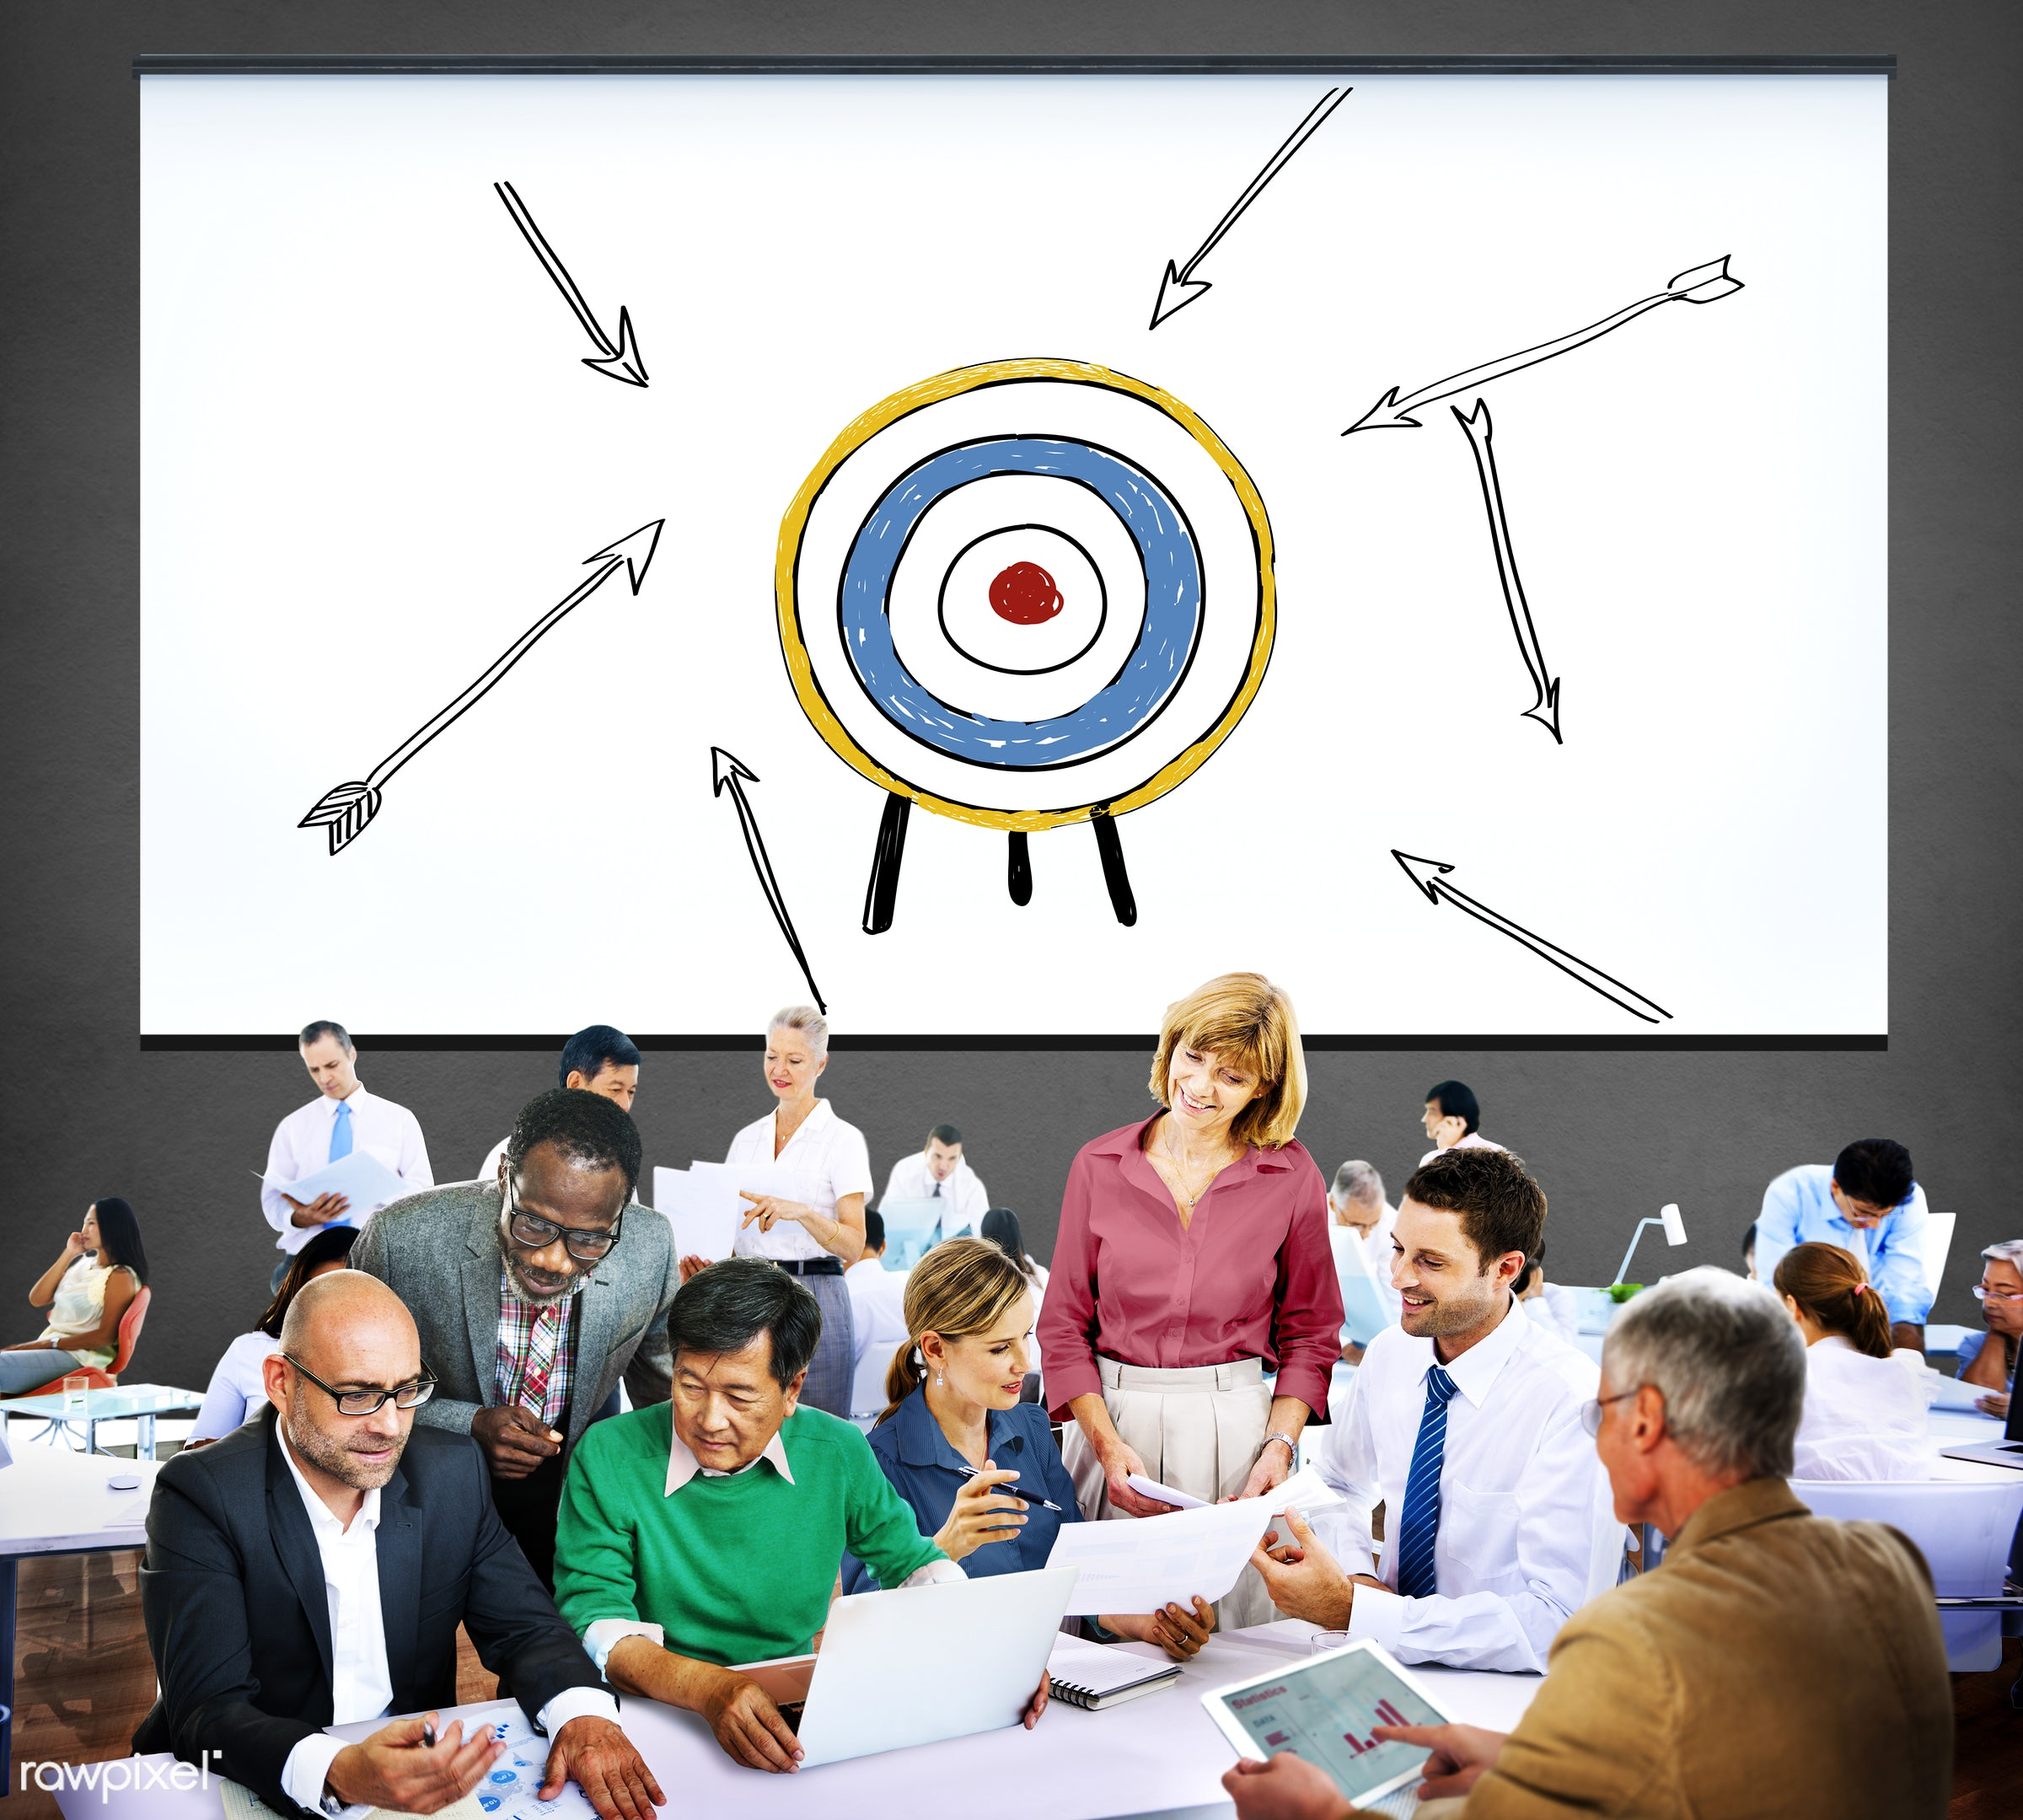 aim, analysis, anticipation, aspiration, believe, bulls eye, business, business people, businessmen, businesswomen, busy,...